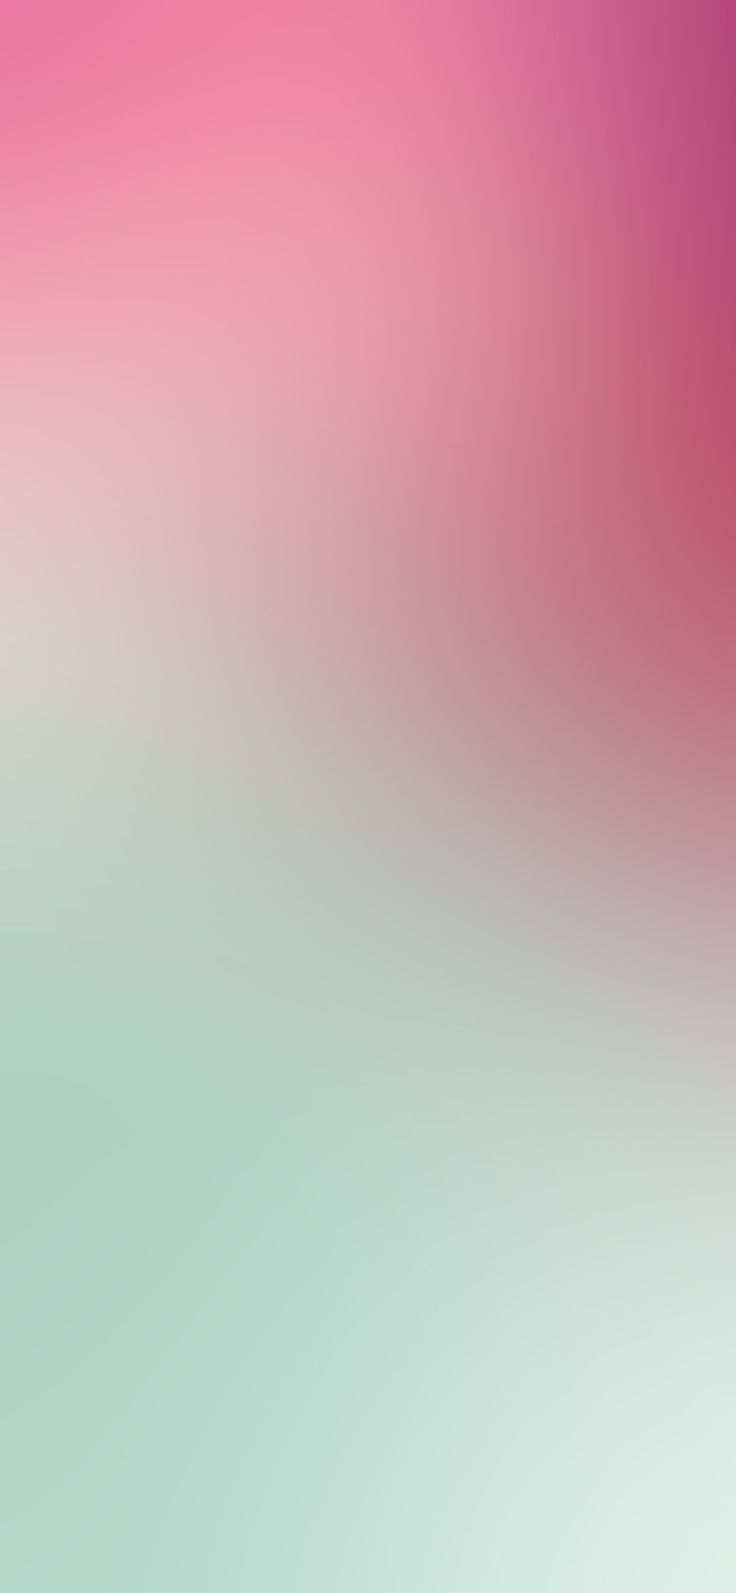 Iphone X Wallpaper Sn30 Pink Rose Pastel Blur Gradation Via